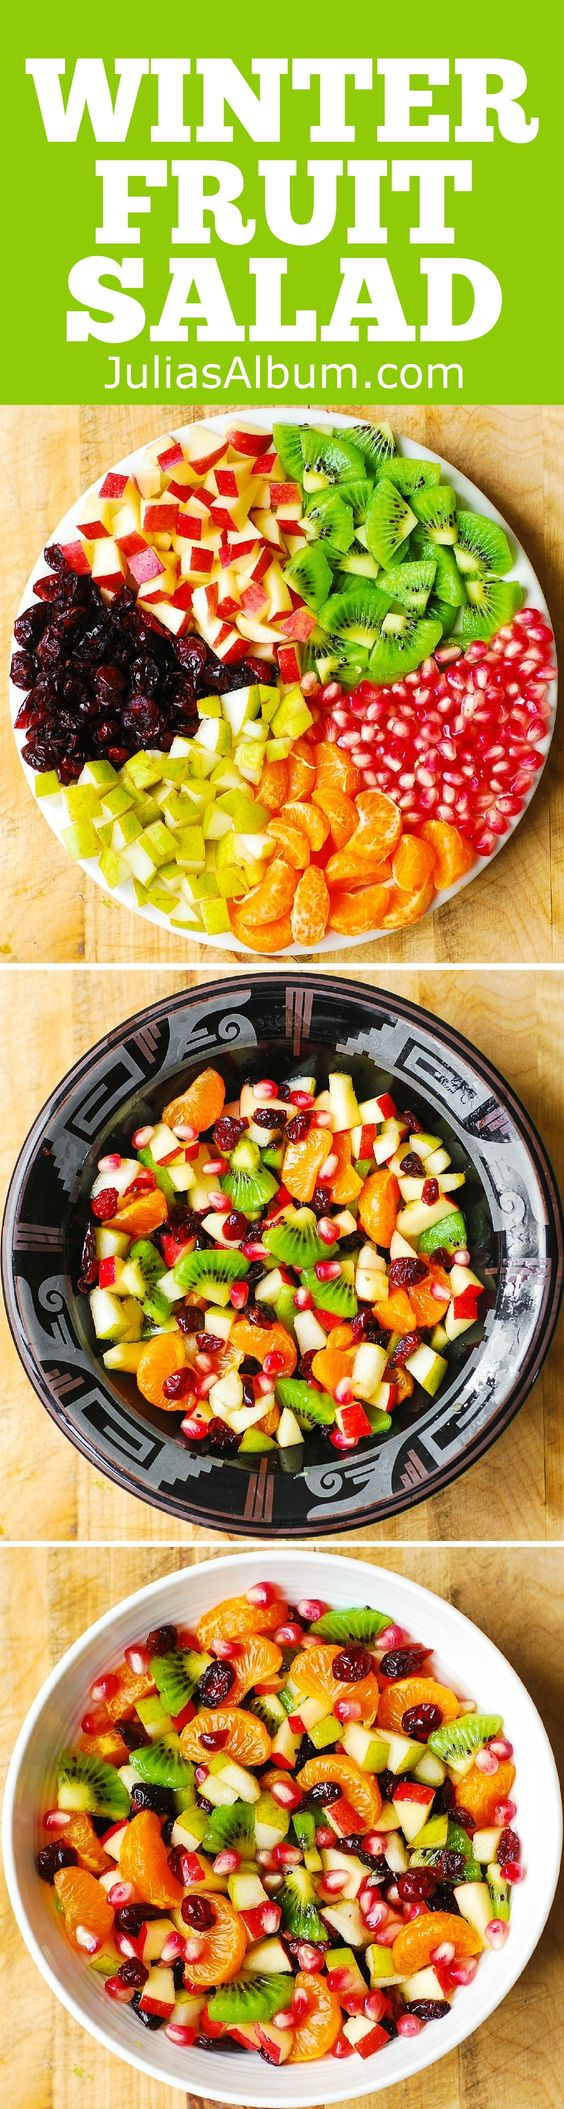 Winter Fruit Salad. Salad ingredients include red apples, pears, kiwi ...